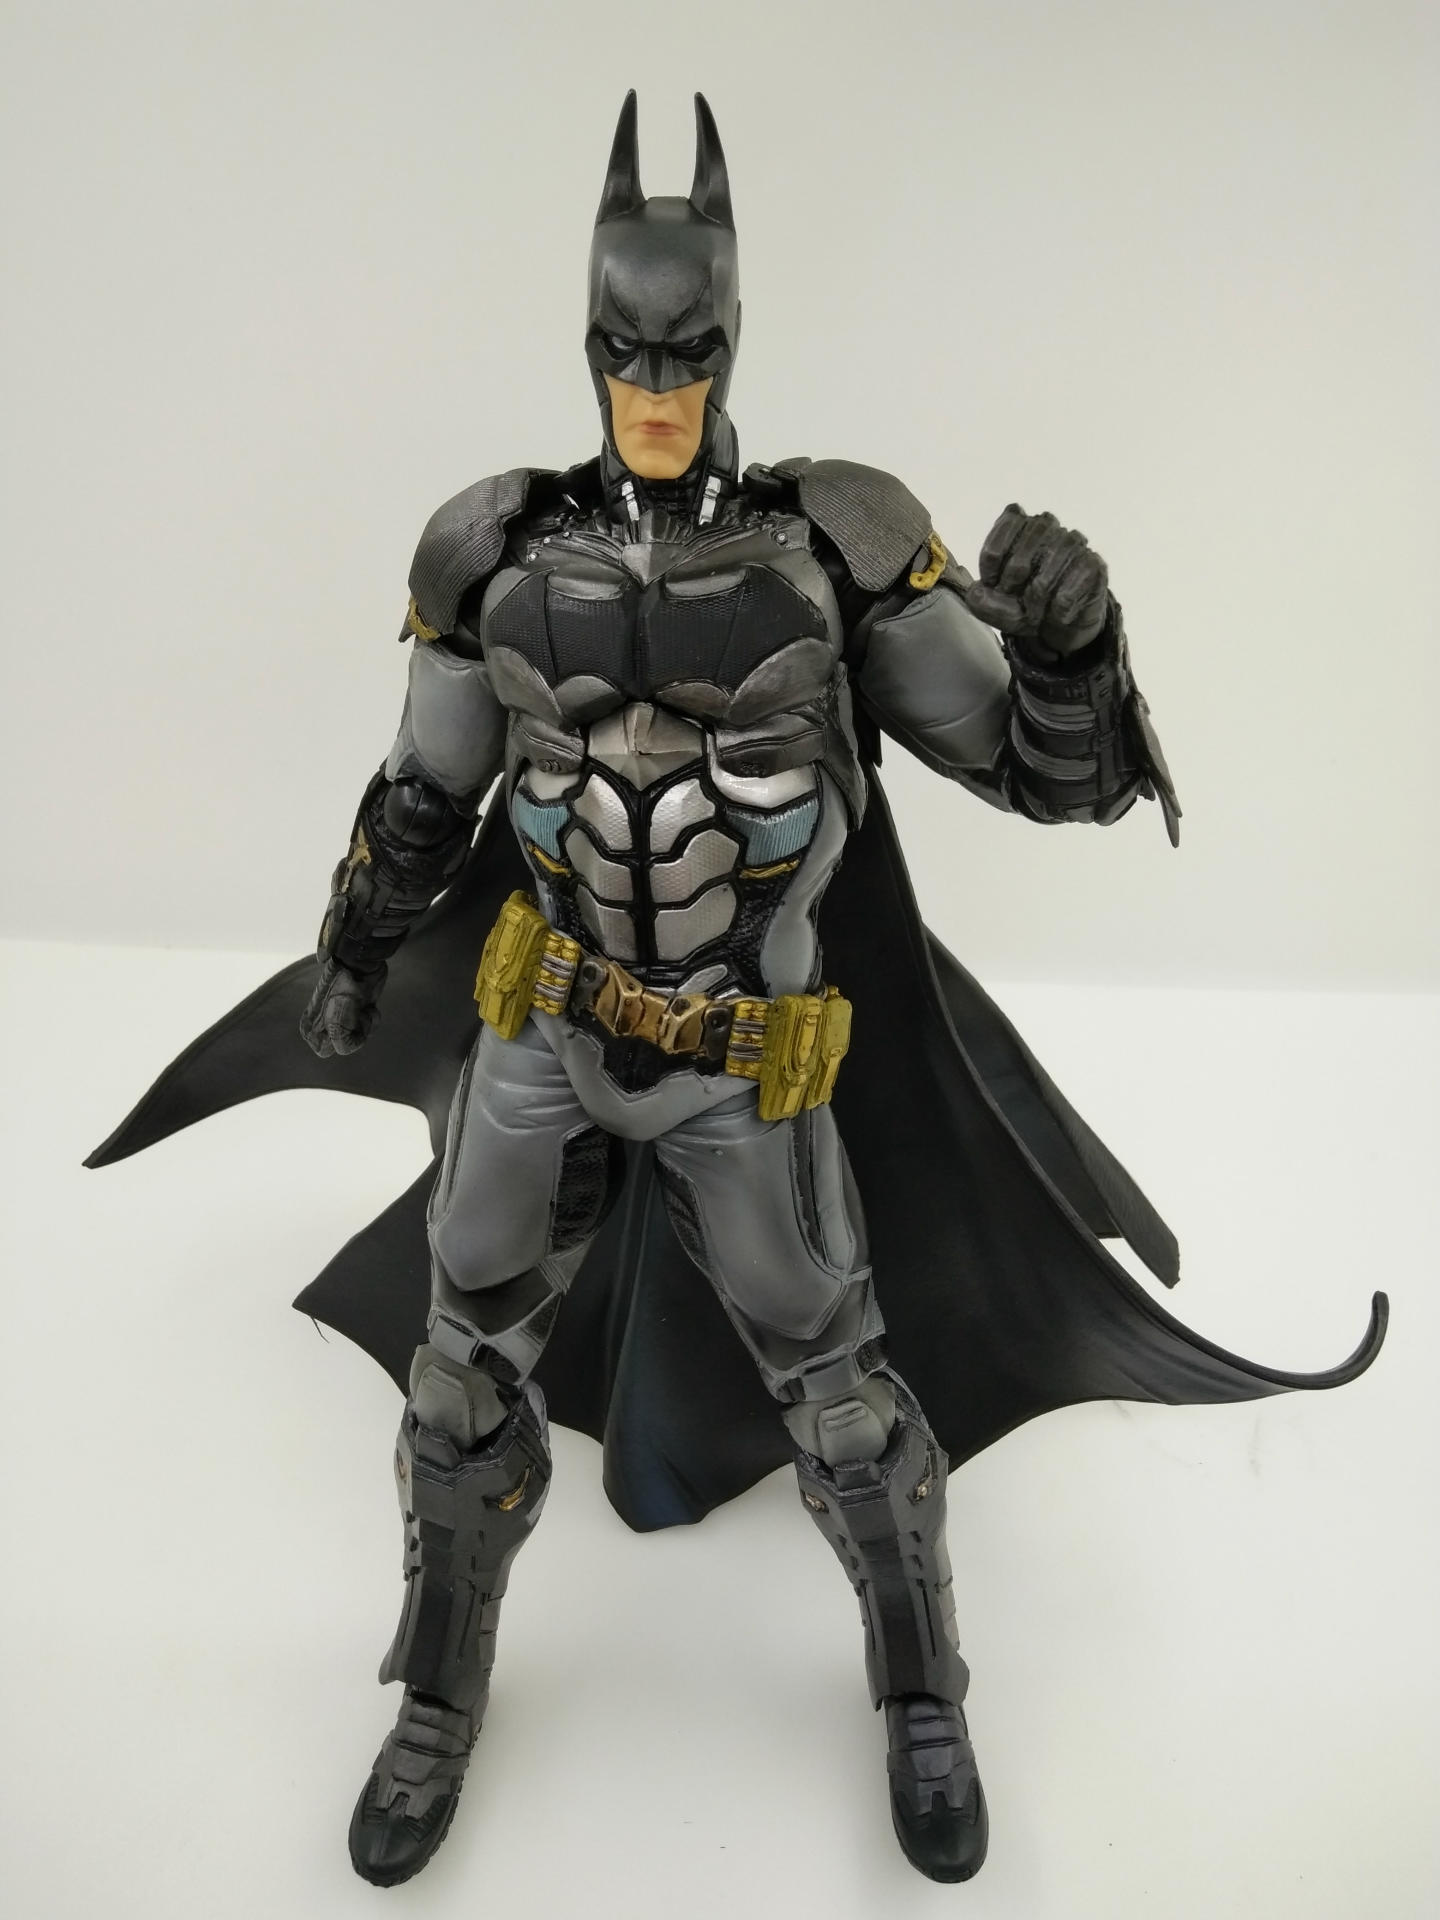 WVW 27CM Hot Sale The Avengers Movie Hero Batman Play Arts Model PVC Toy Action Figure Decoration For Collection Gift цена и фото